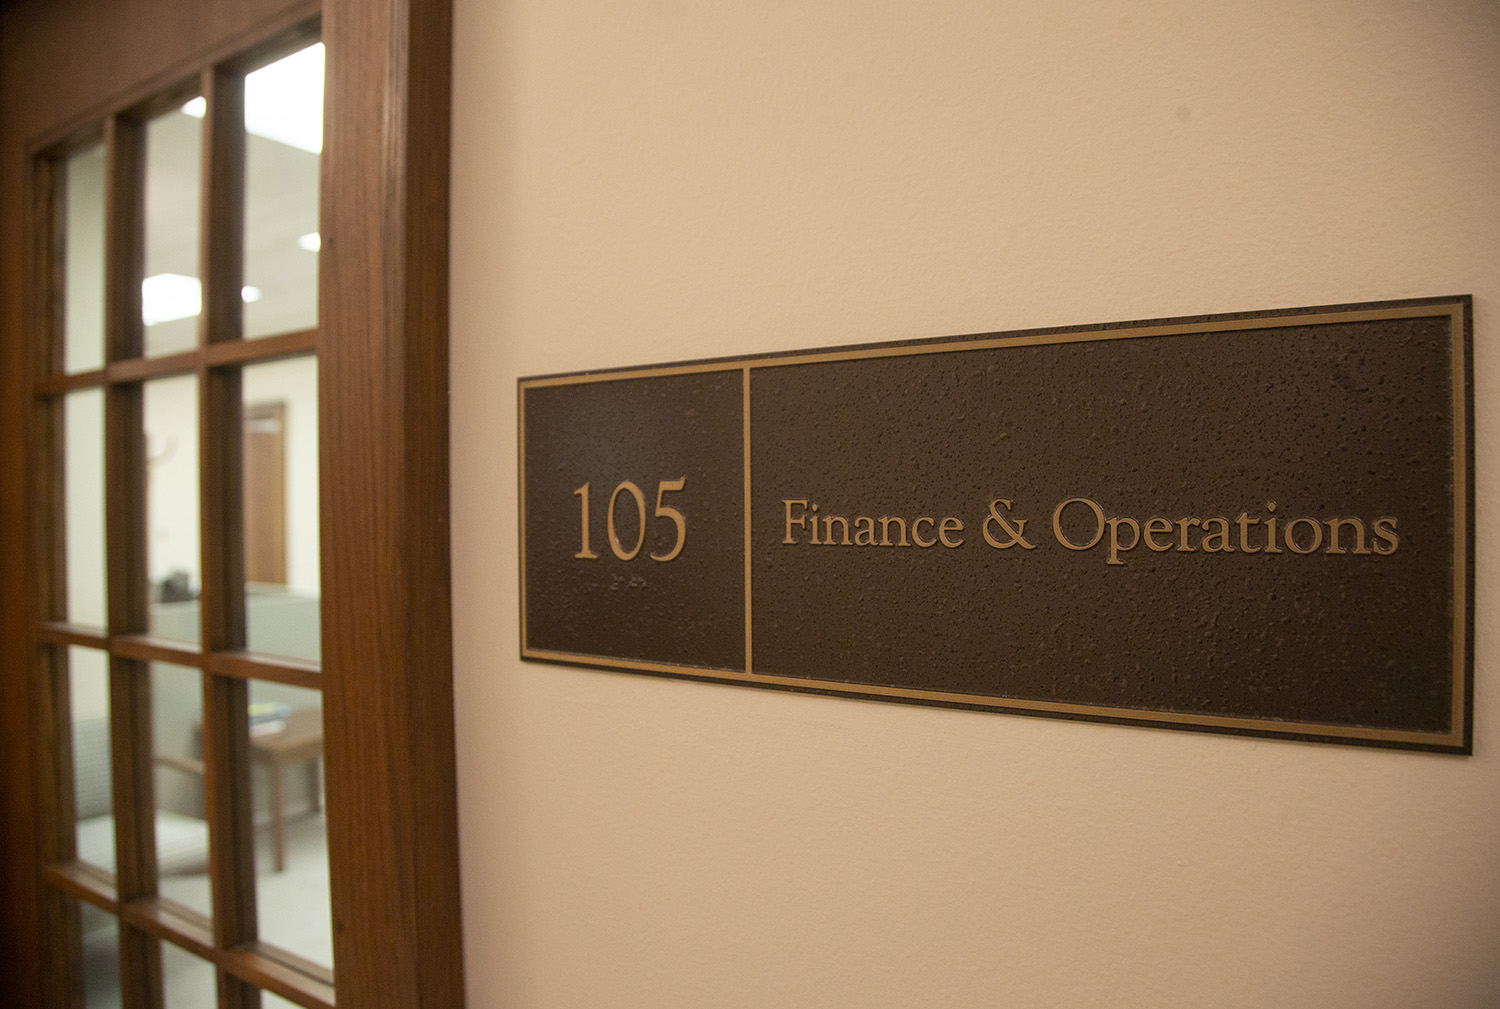 The office of Finance and Operations is seen in Jessup Hall on Tuesday, November 19, 2019.